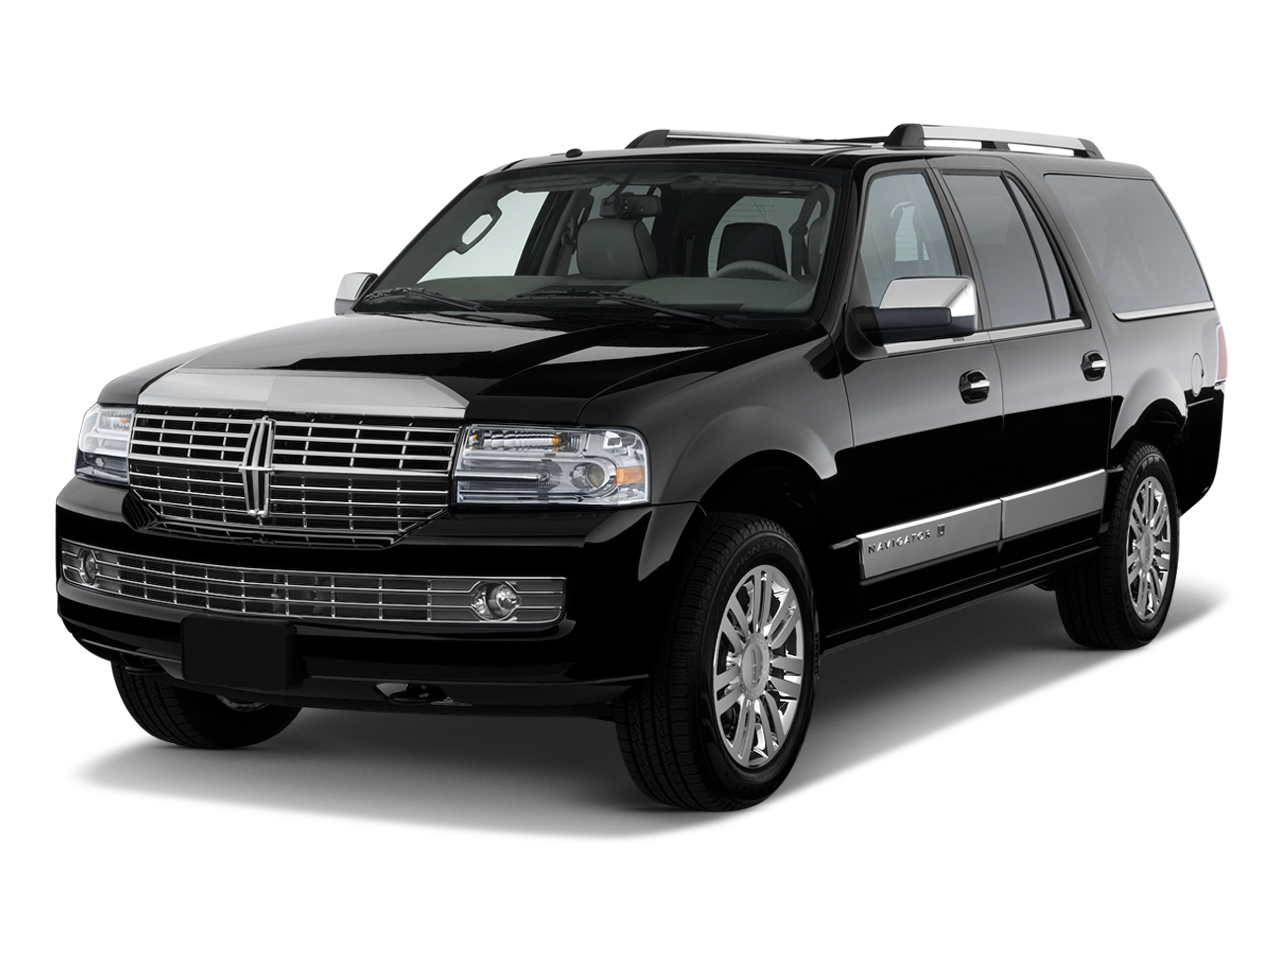 2011 Lincoln Navigator Gas Mileage The Car Connection